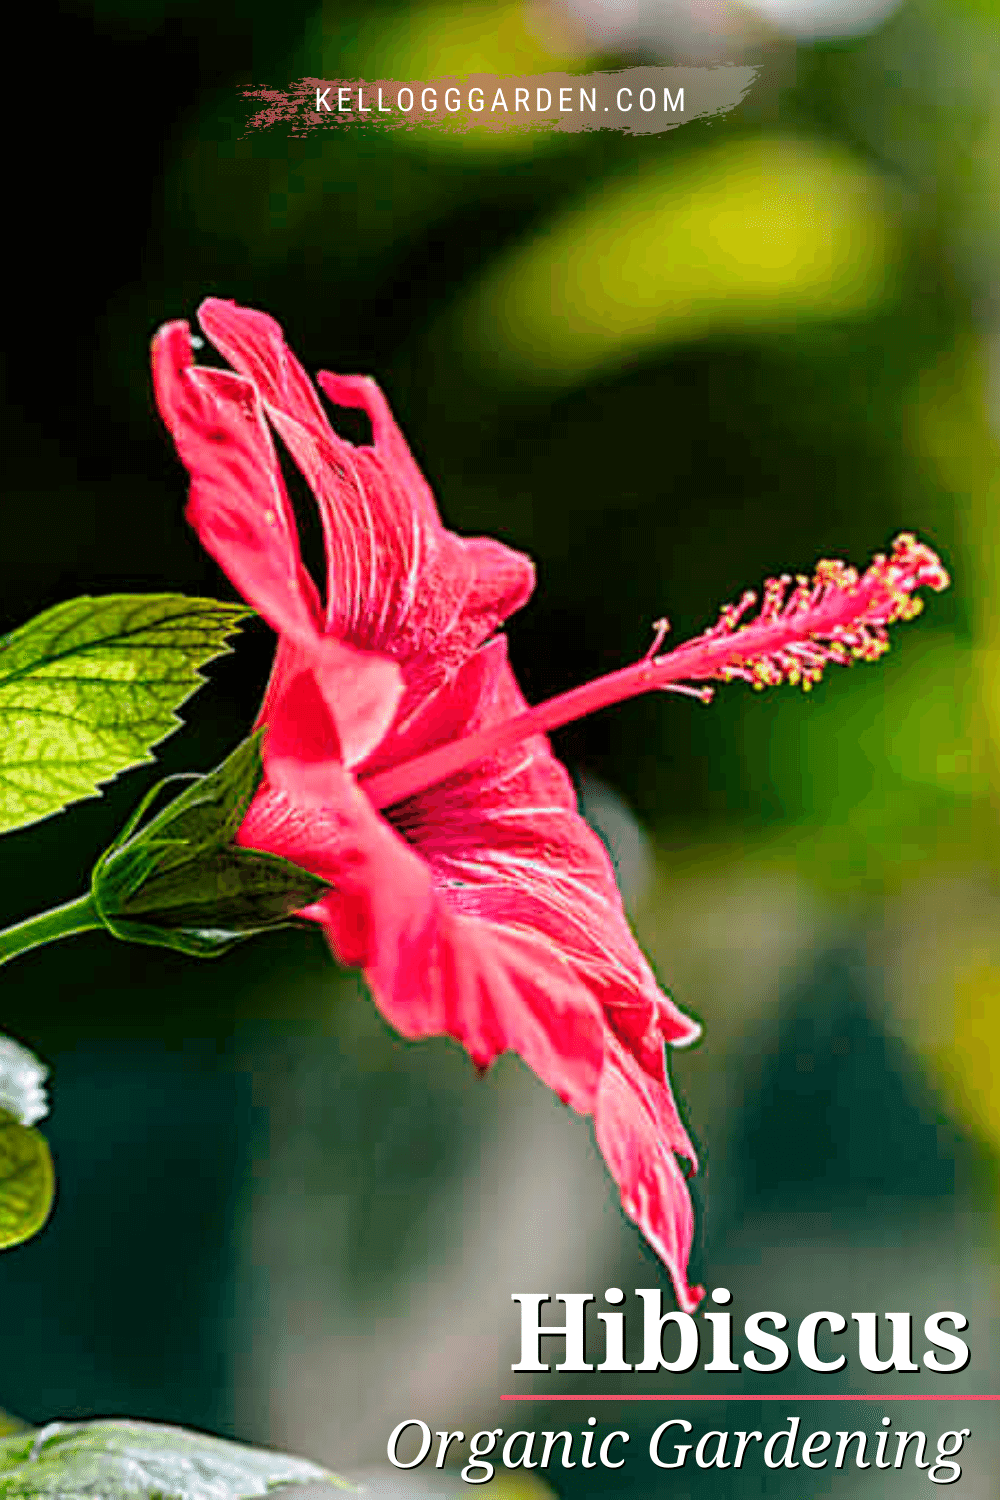 close up of red hibiscus flower.